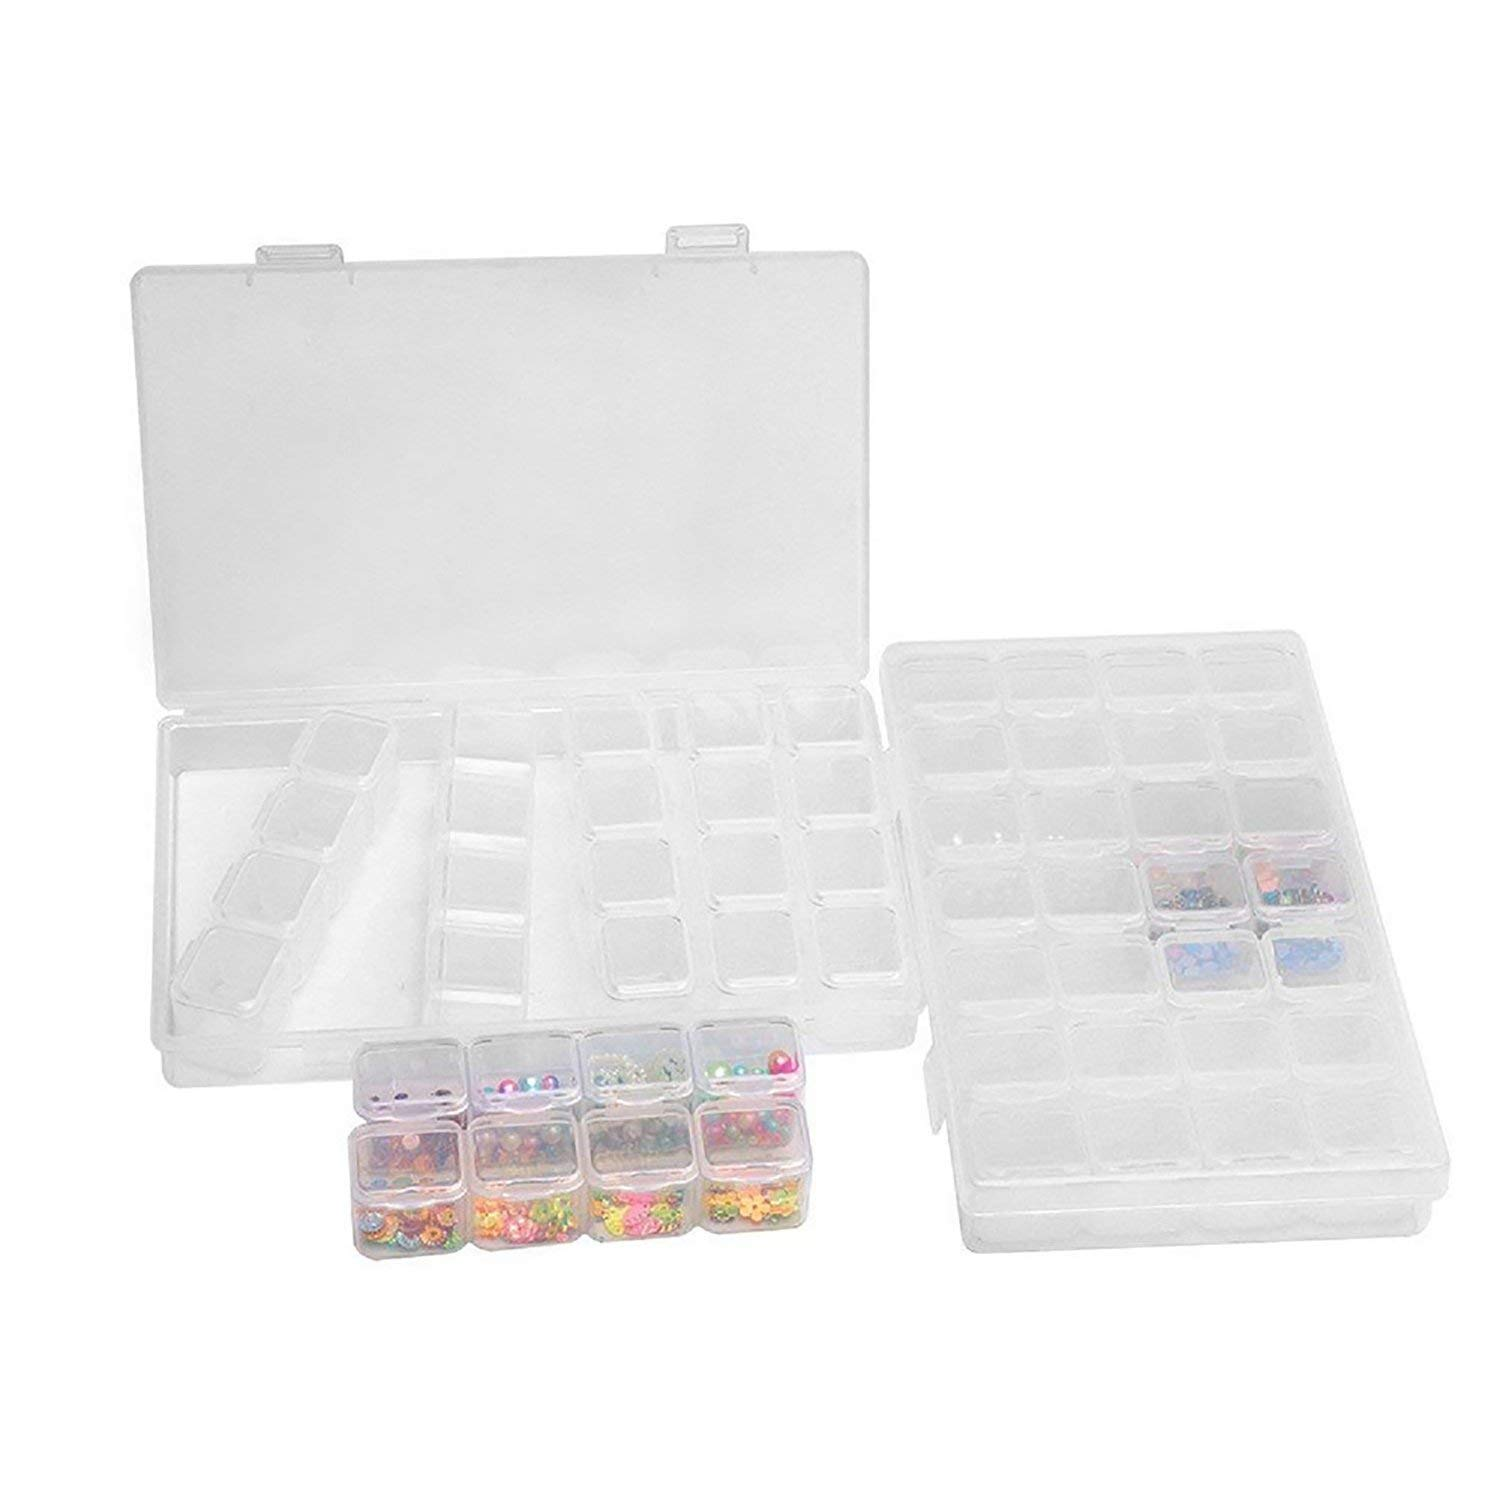 Clear Bead Container 2 / 3 Pack 28 Grids Diamond Embroidery Box with Secure Lid Removable Divider Hard Plastic Transparent Jewelry Storage Case Makeup Comestic Organizer for Seed Craft Making Accessories Centtechi